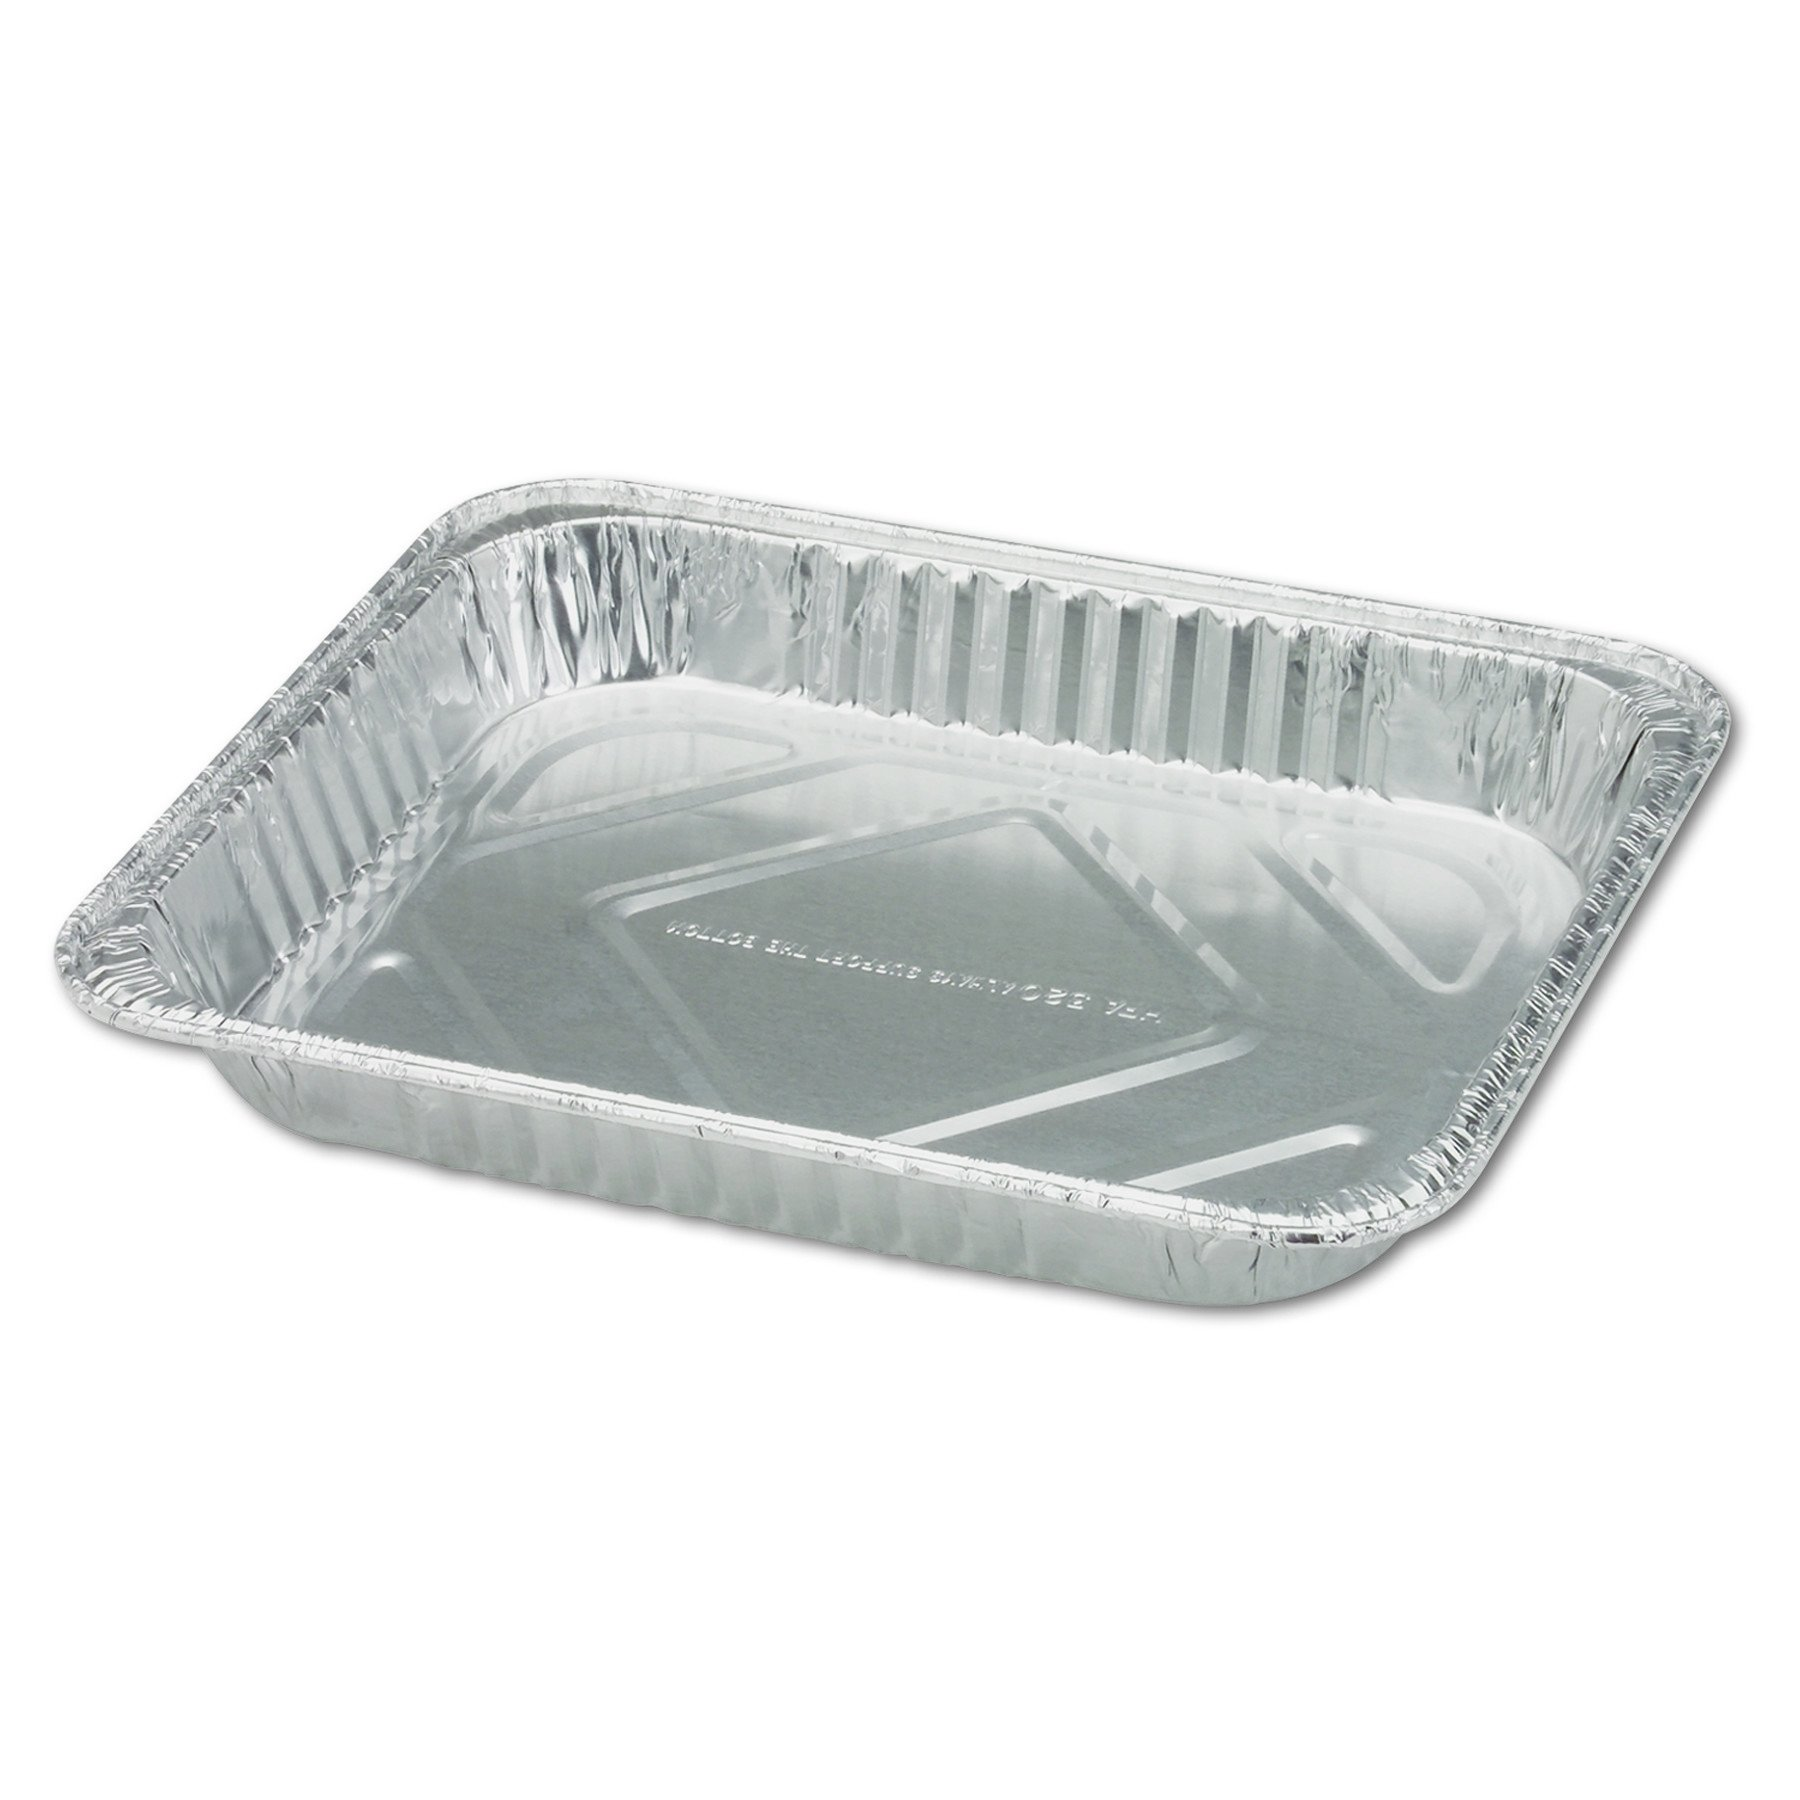 Handi-Foil of America 32035 Steam Table Aluminum Pan, Half-Size, 1 11/16'' Shallow (Case of 100)